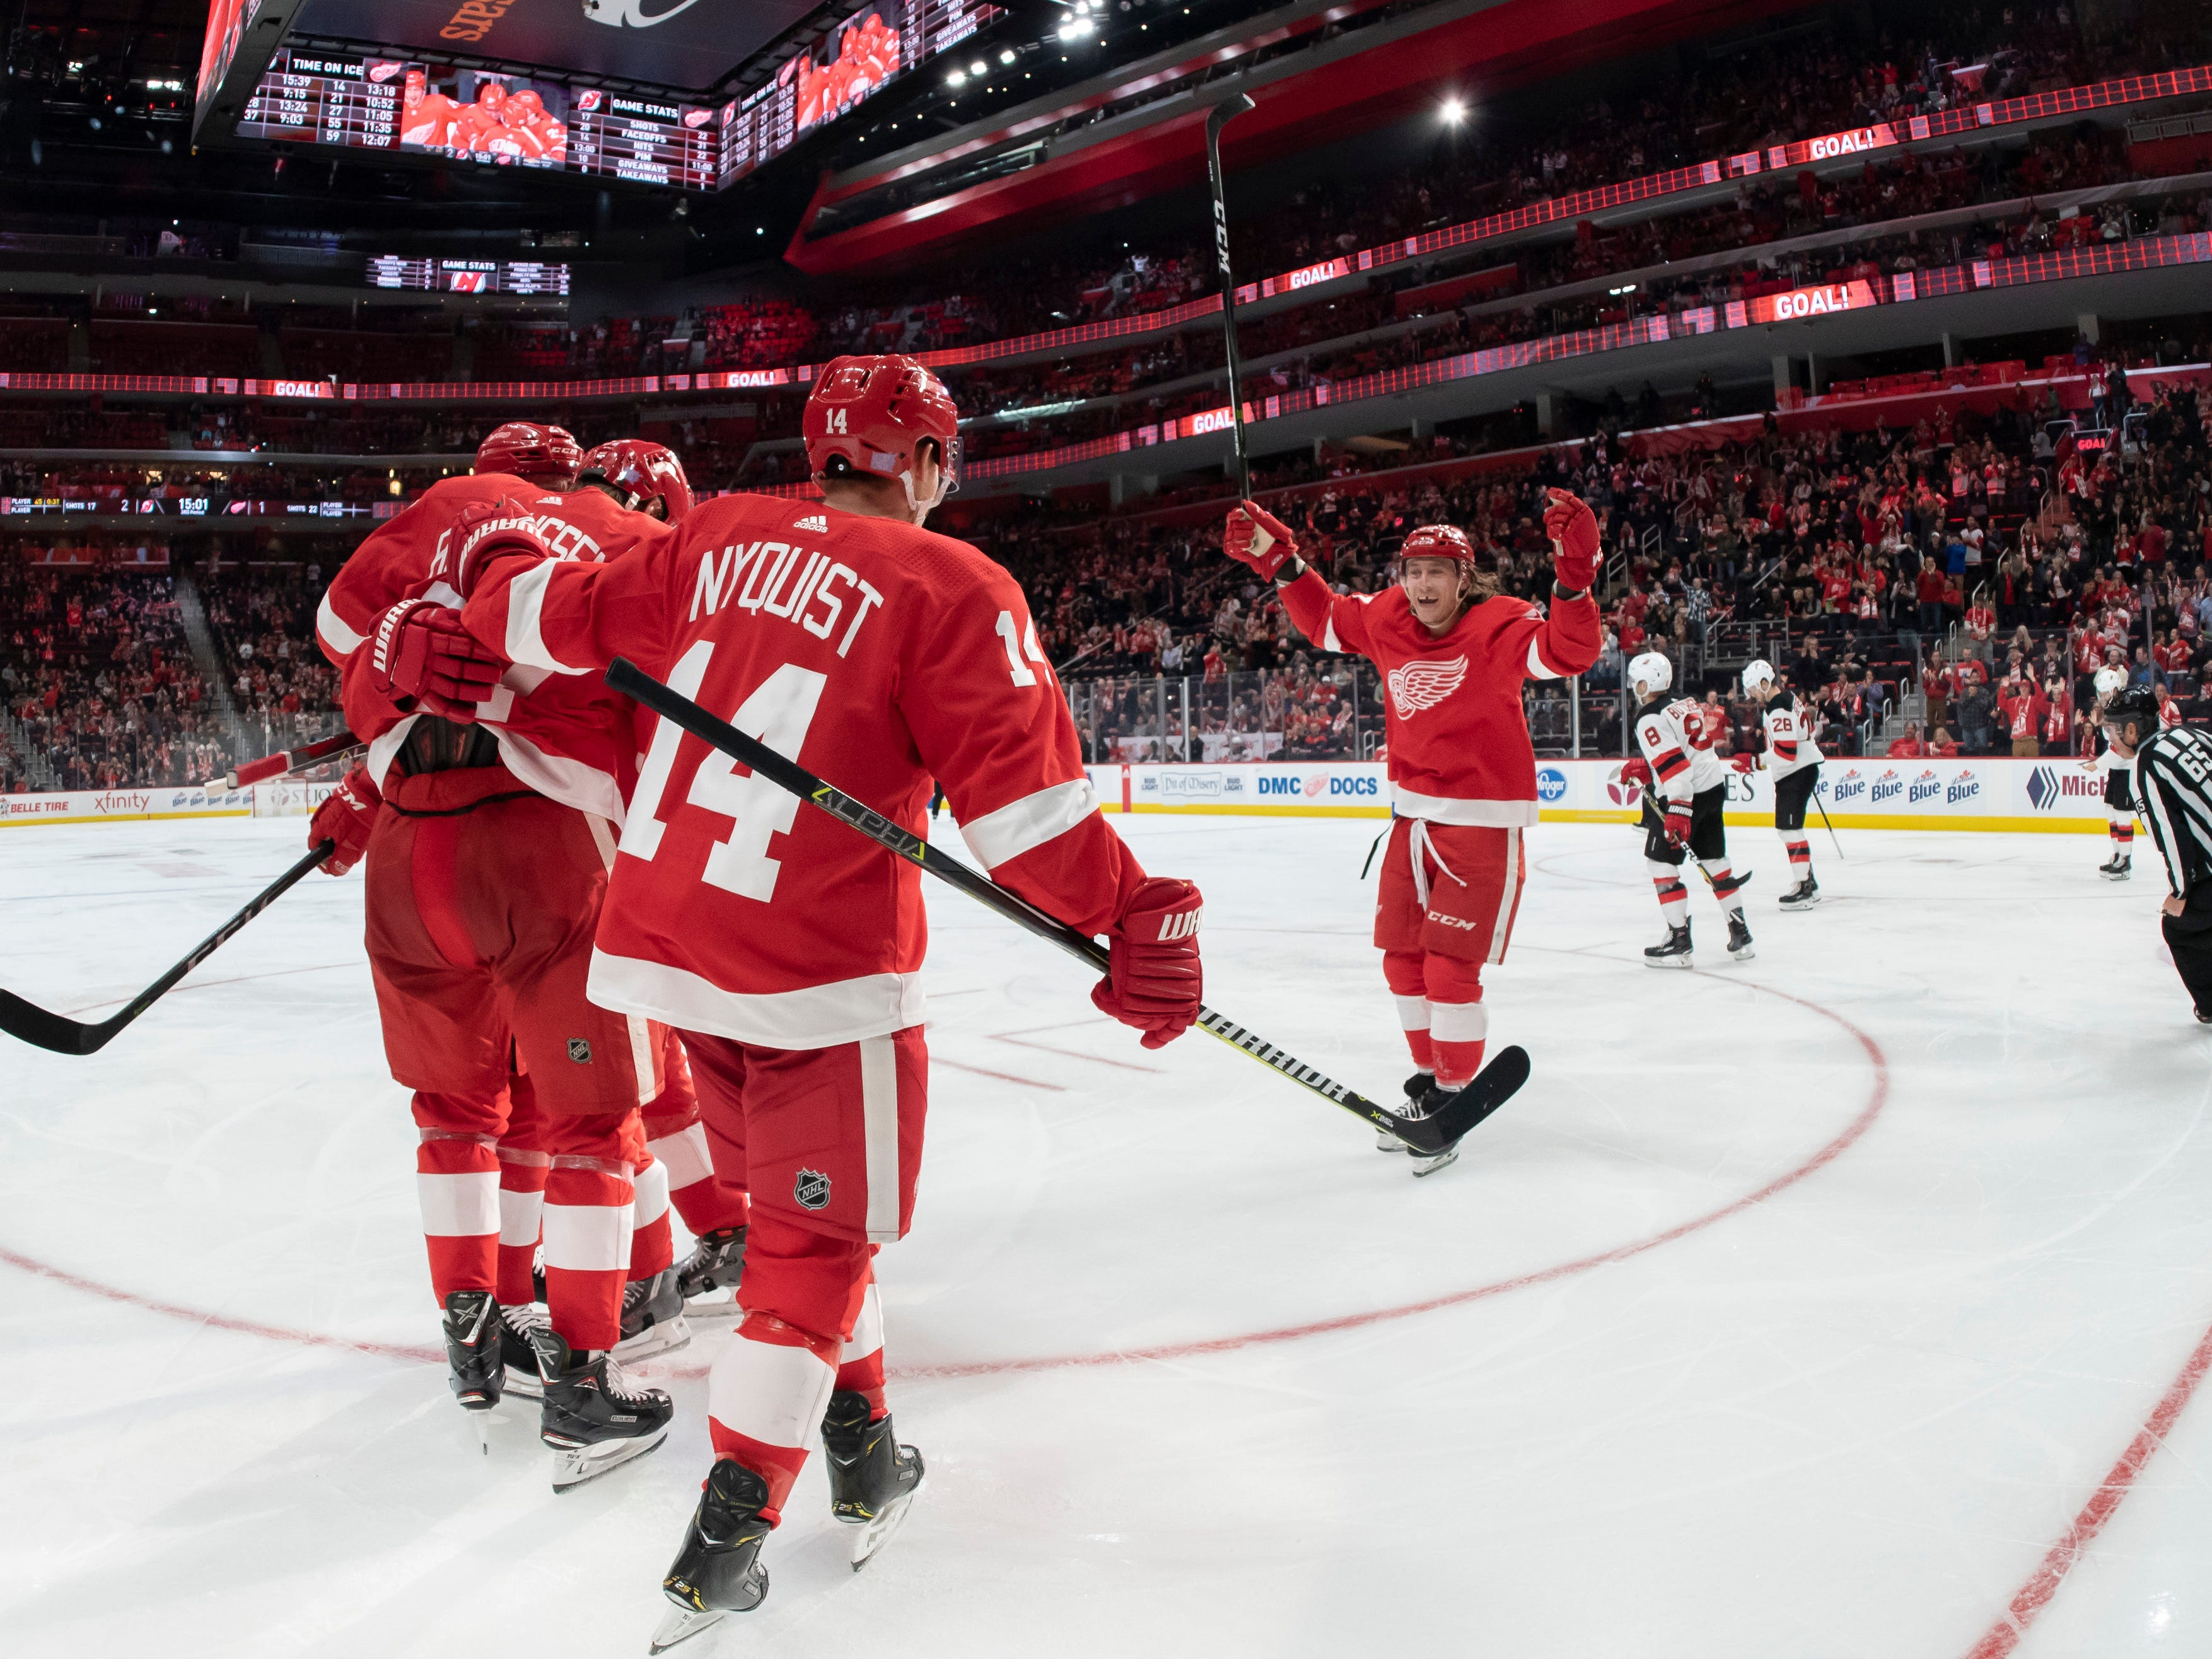 Go through the gallery for midseason grades and analysis on the Red Wings by Ted Kulfan of The Detroit News.